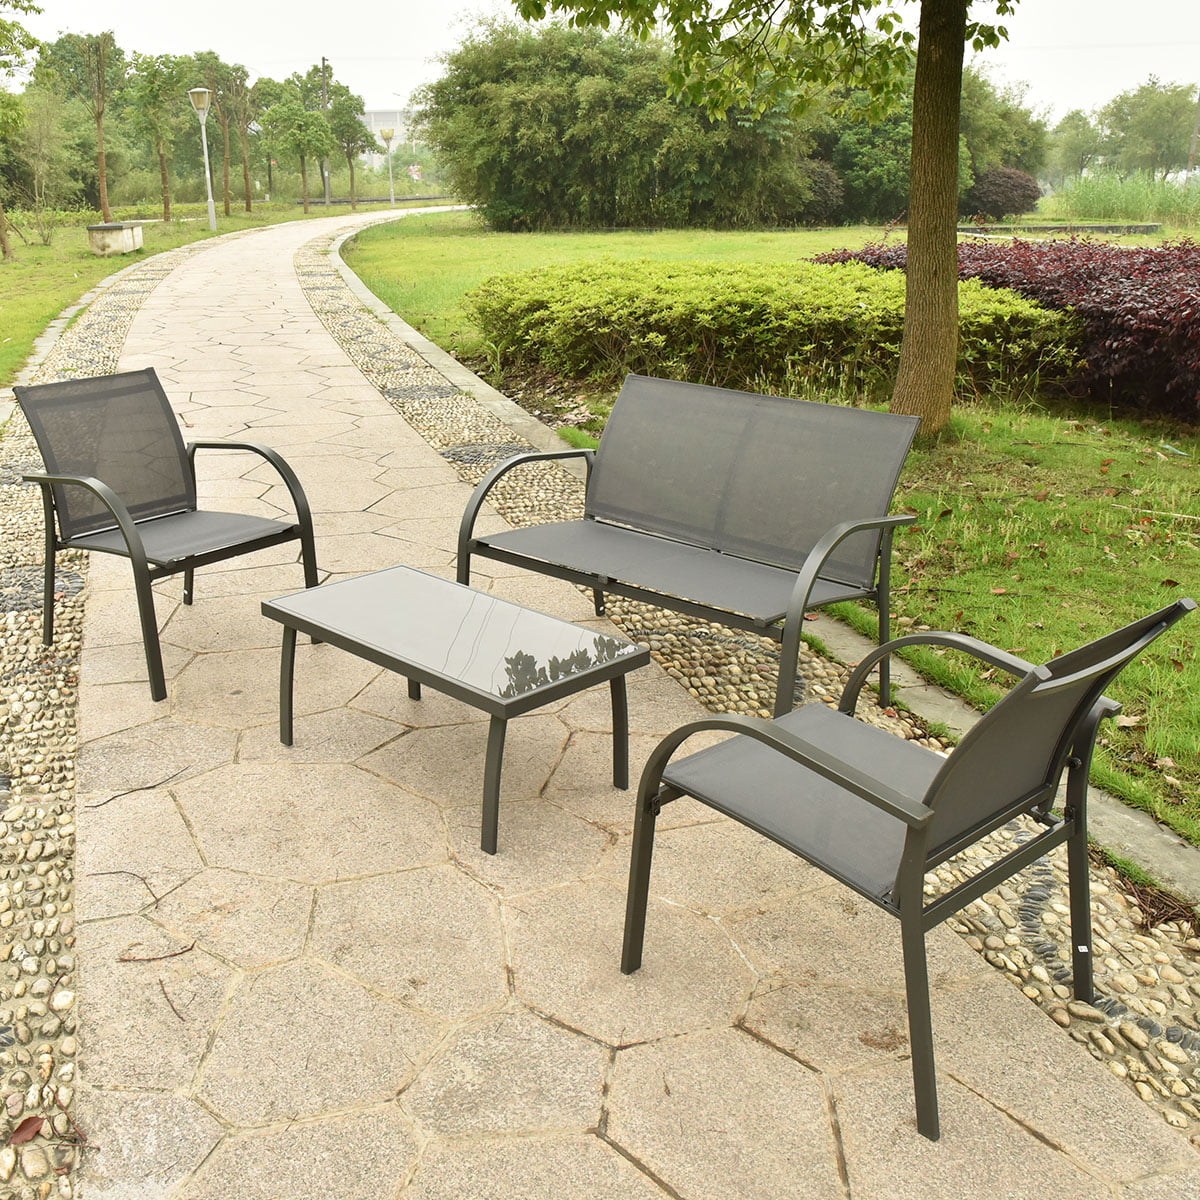 Costway 4PCS Patio Garden Furniture Set Steel Frame Outdoor Lawn ...